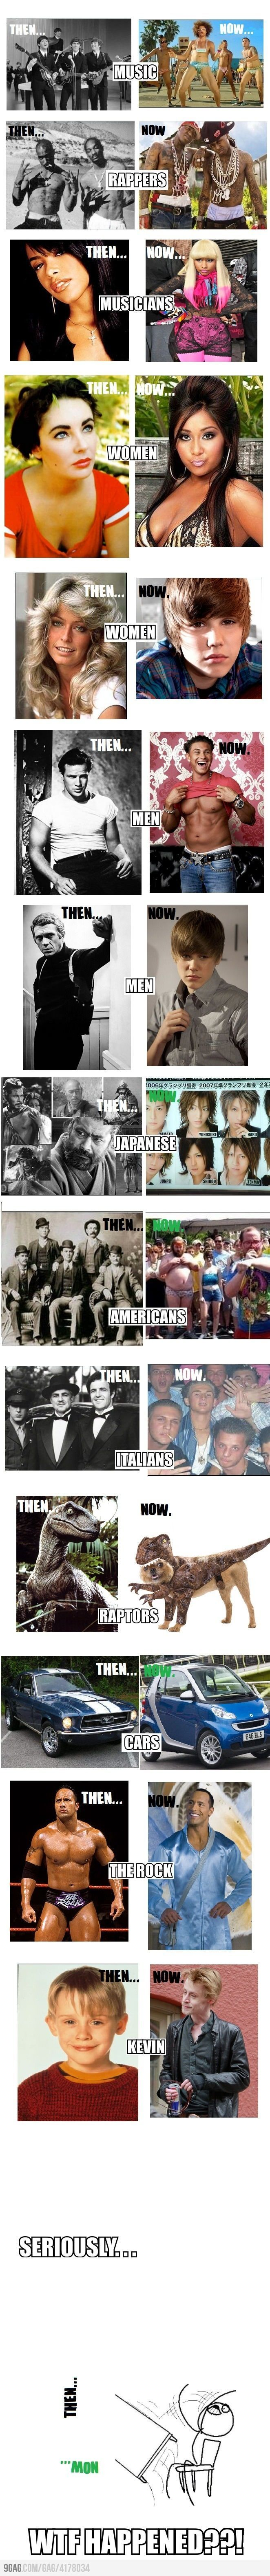 Then Vs Now, Click the link to view todays funniest pictures!